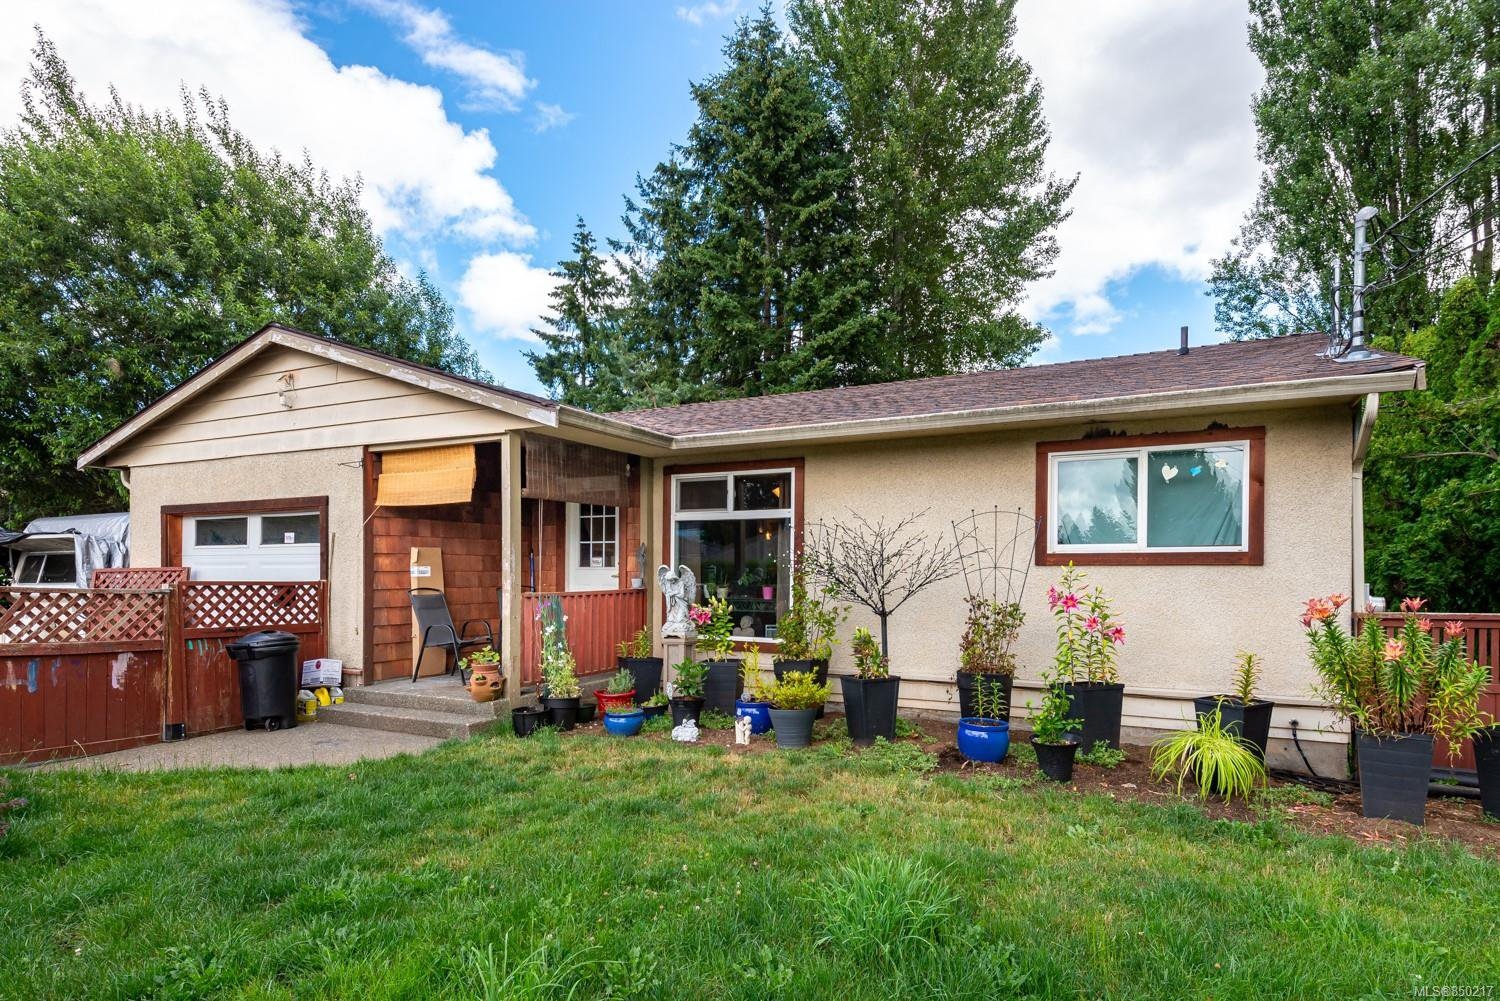 Main Photo: 1750 Willemar Ave in : CV Courtenay City Single Family Detached for sale (Comox Valley)  : MLS®# 850217